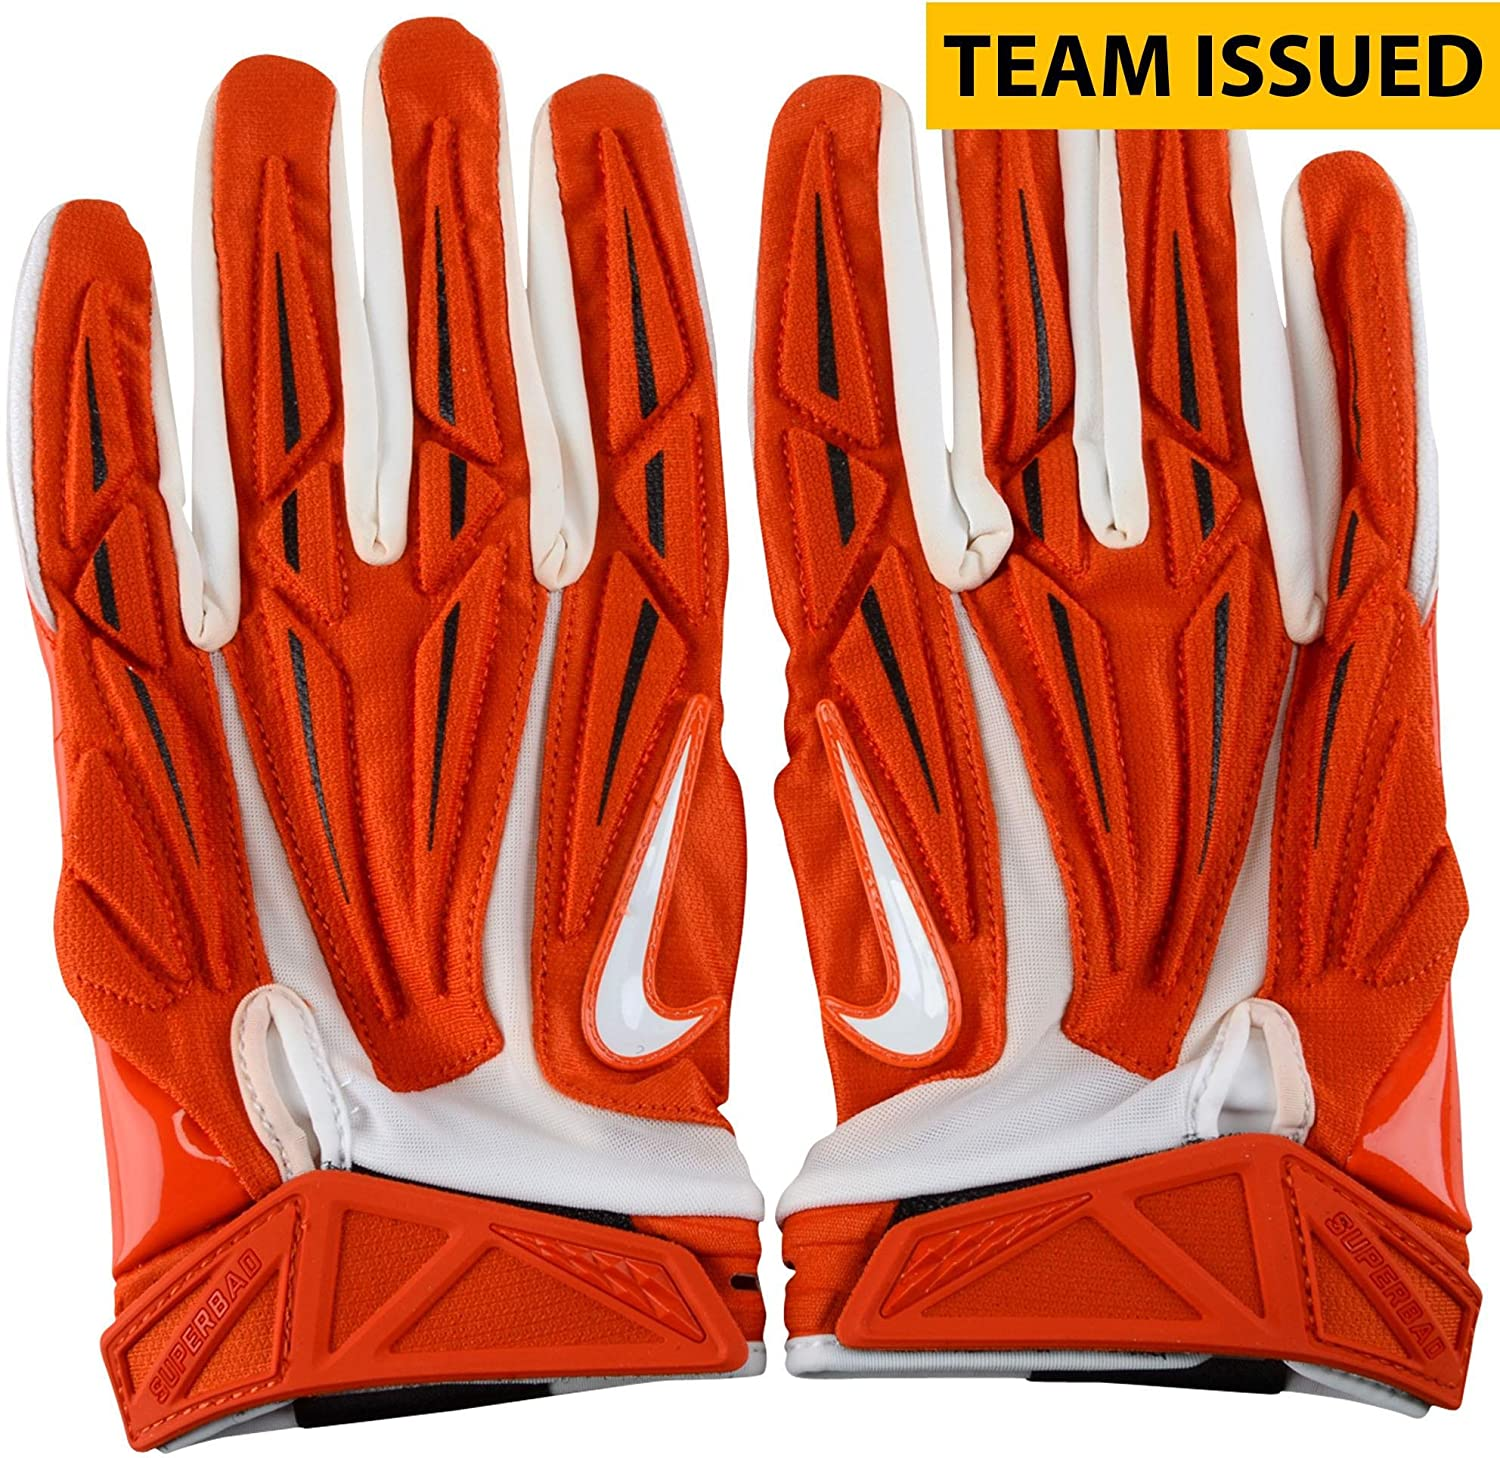 Clemson Tigers Team-Issued Orange and White Superbad Nike Football Gloves - Size 4XL - Fanatics Authentic Certified